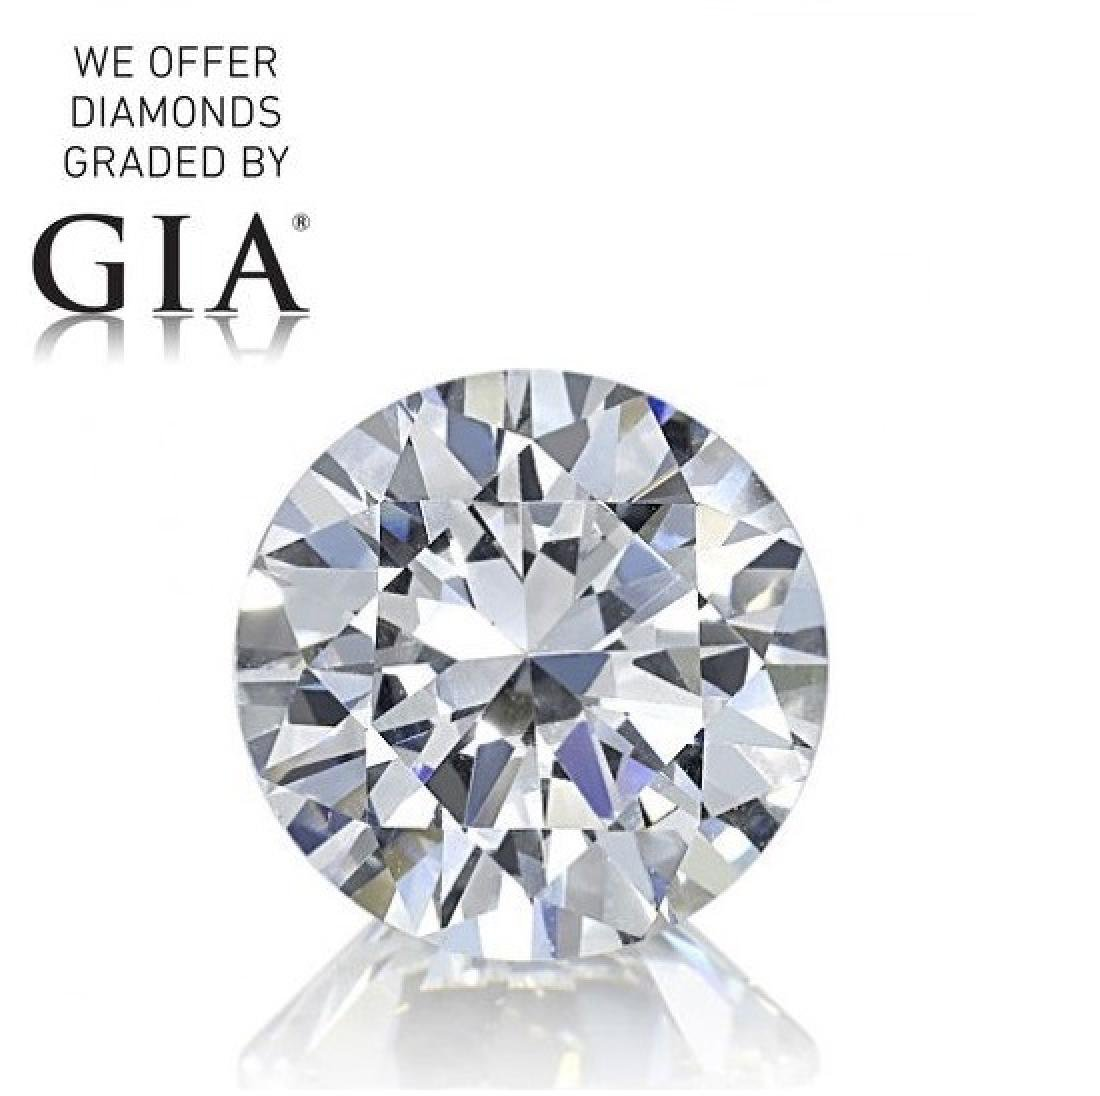 2.54 ct, Color G/IF, Round cut Diamond